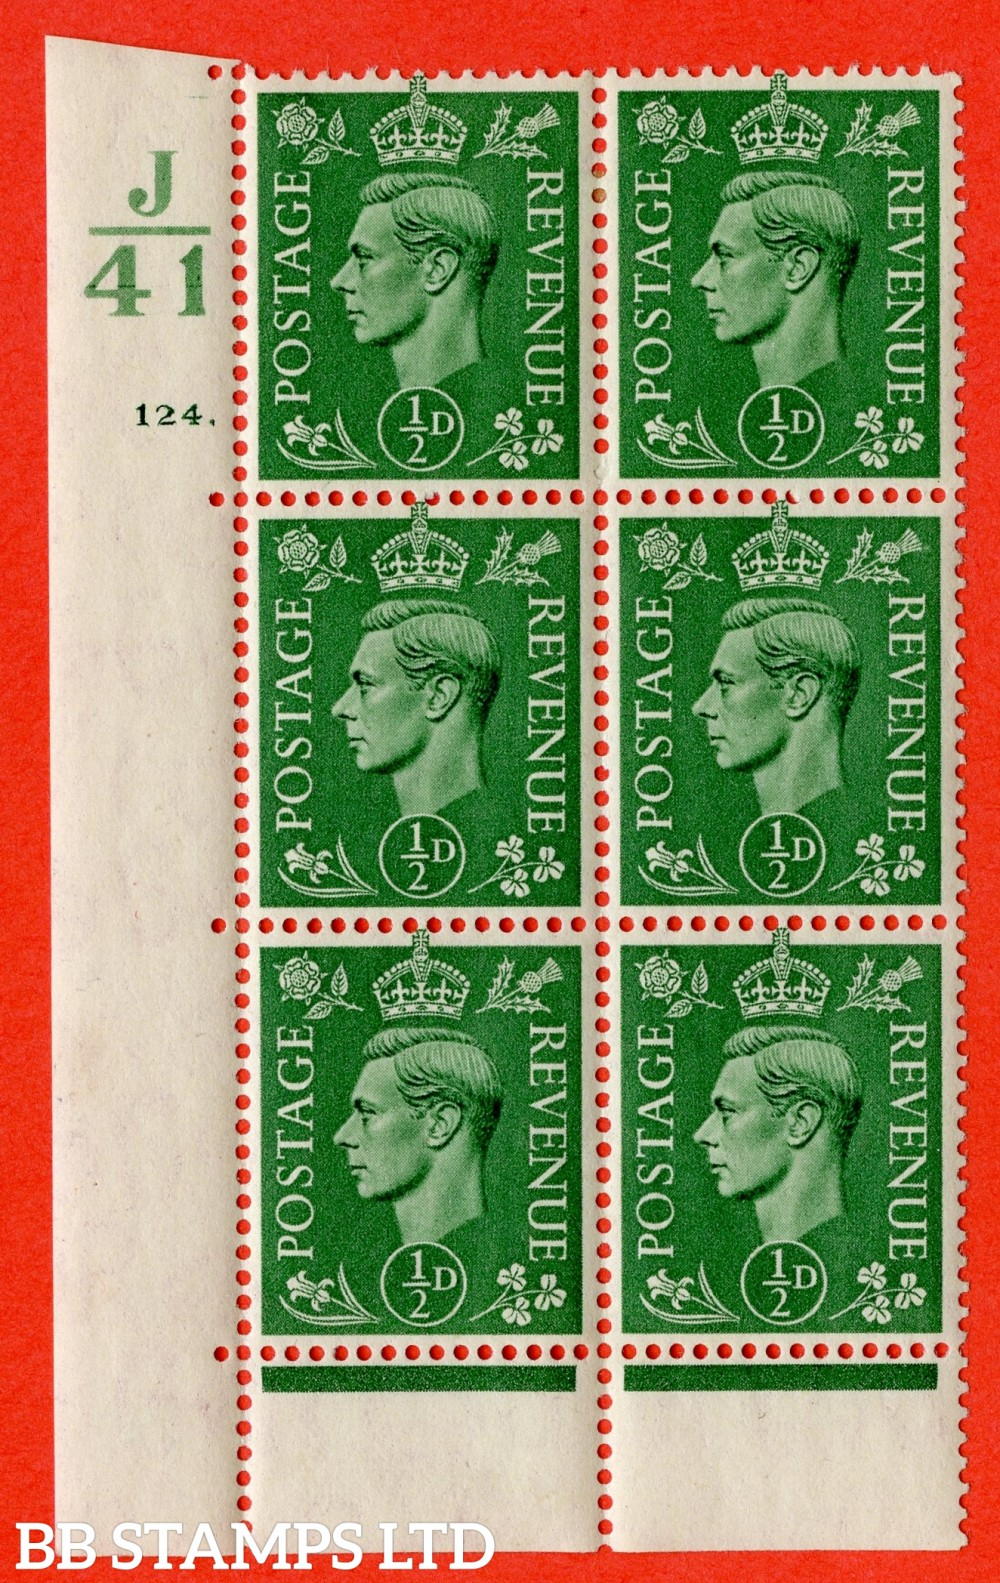 "SG. 485. Q2. ½d Pale Green. A very fine lightly mounted mint "" Control J41 cylinder 124 dot "" block of 6 with perf type 6B E/P with marginal rule."